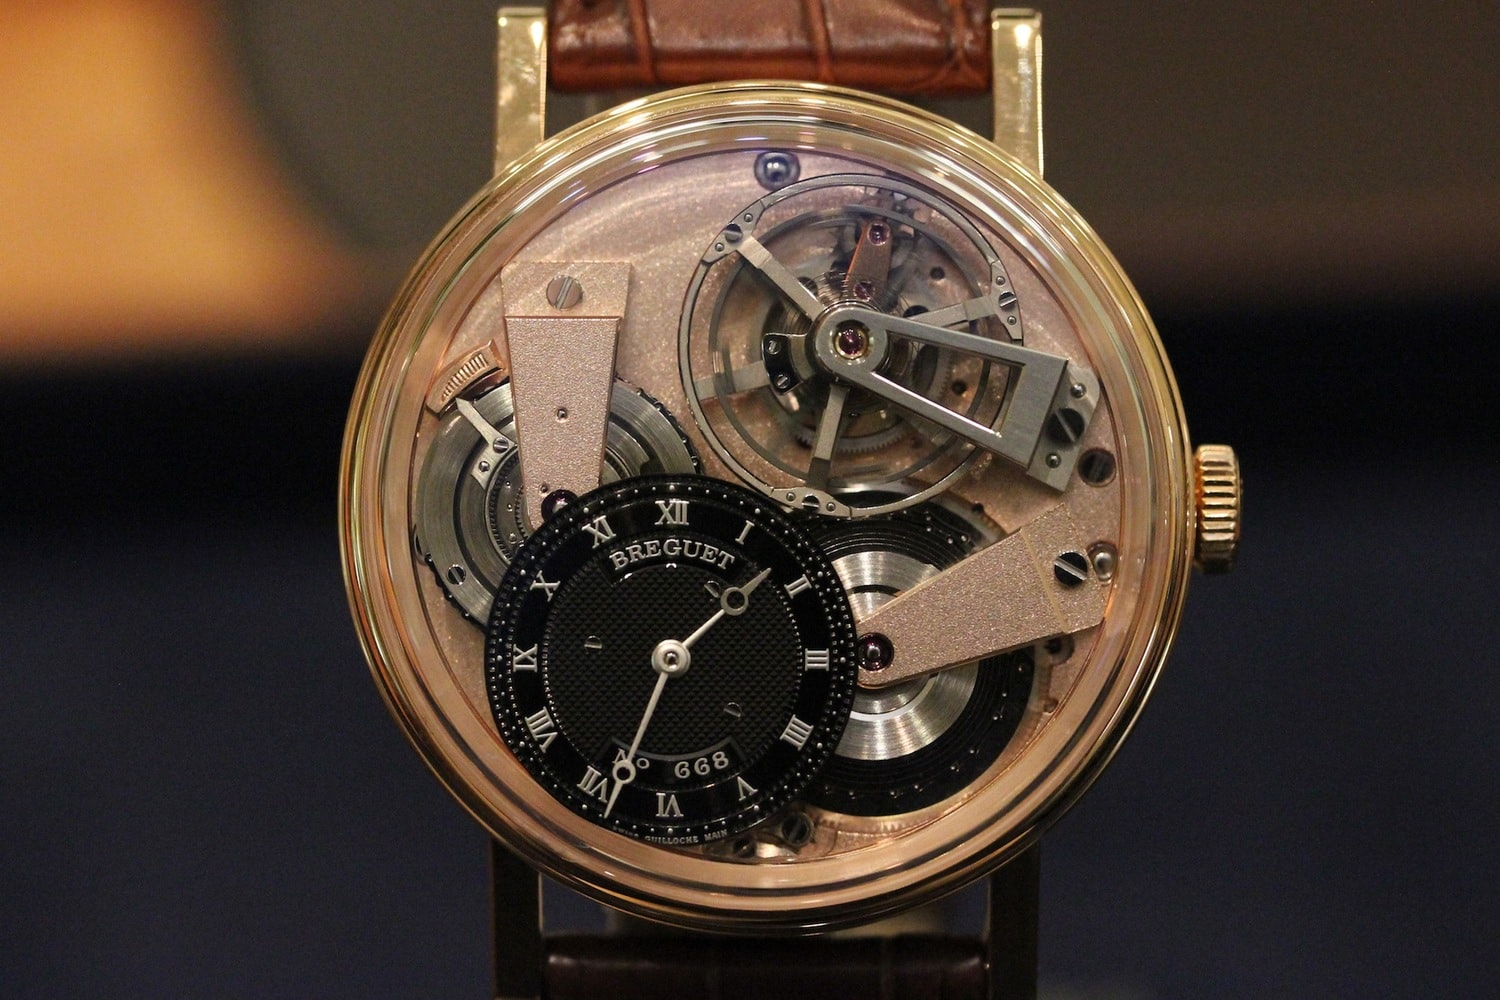 Breguet Tradition Tourbillon Breguet Tourbillon Chaine